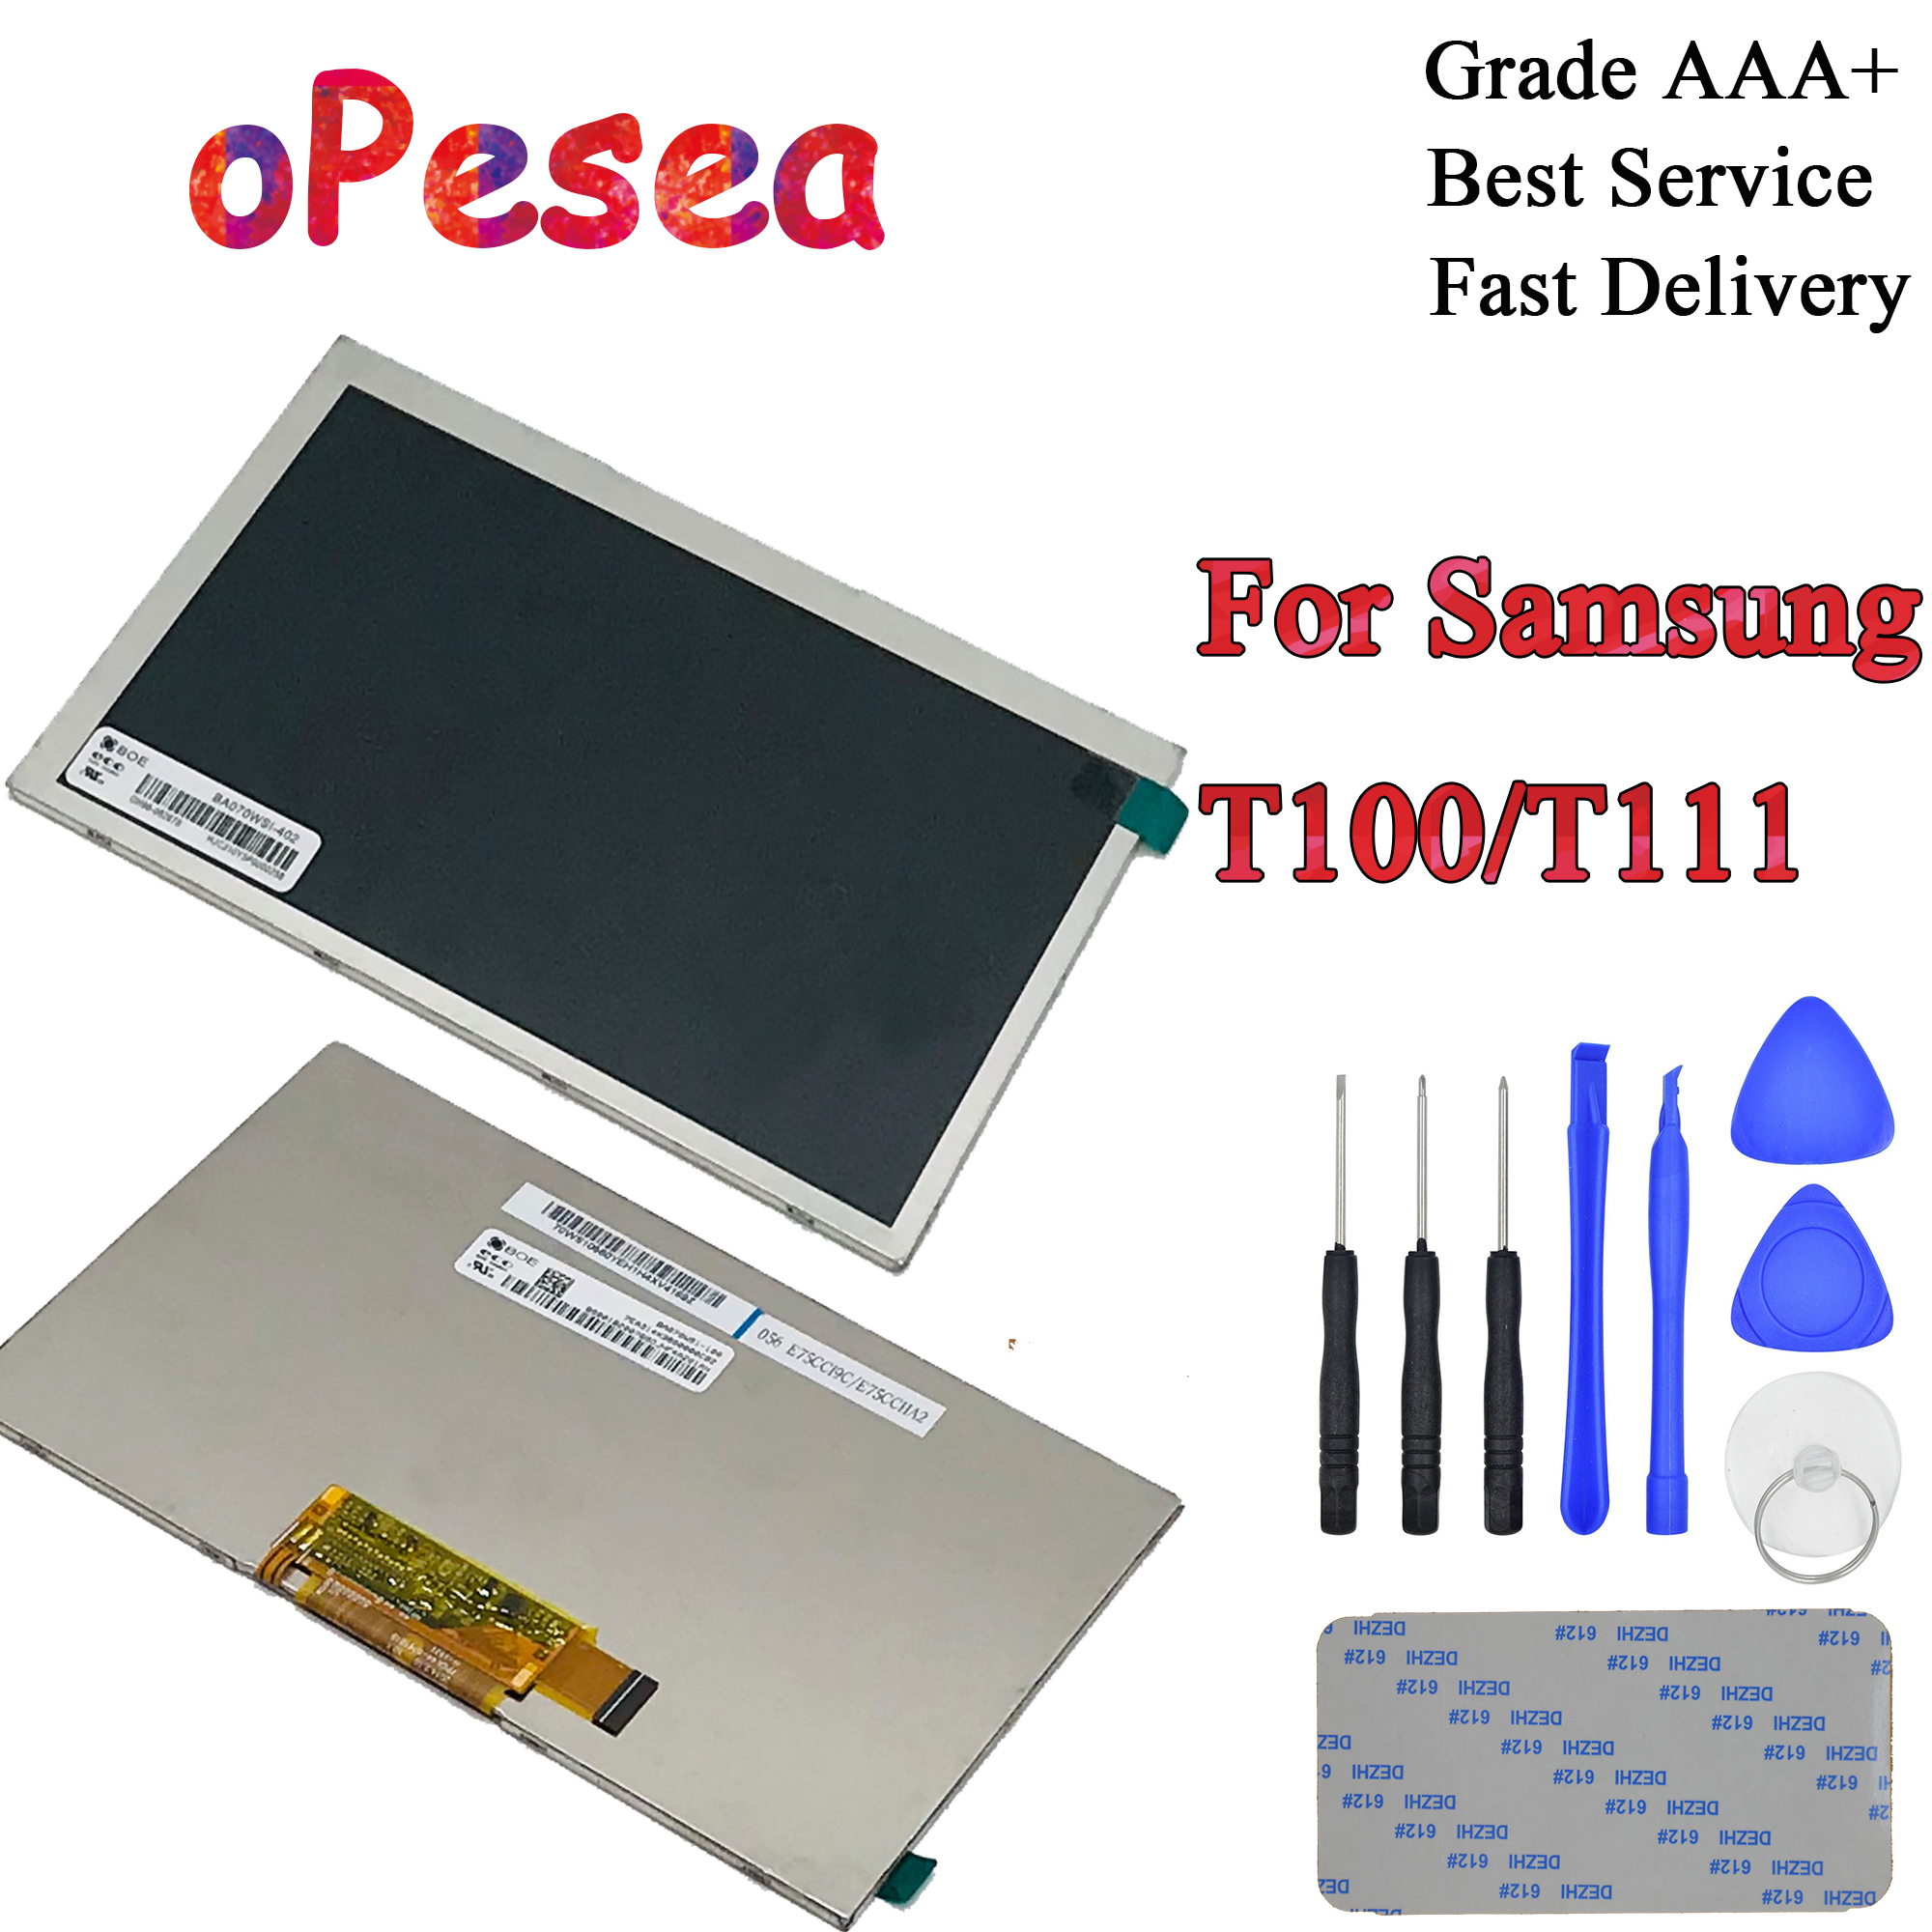 OPesea For Samsung Galaxy Tab 3 Lite 7.0 T110 T111 T116 T113 SM-T110 SM-T111 LCD Display Screen Moduel Replacement Parts